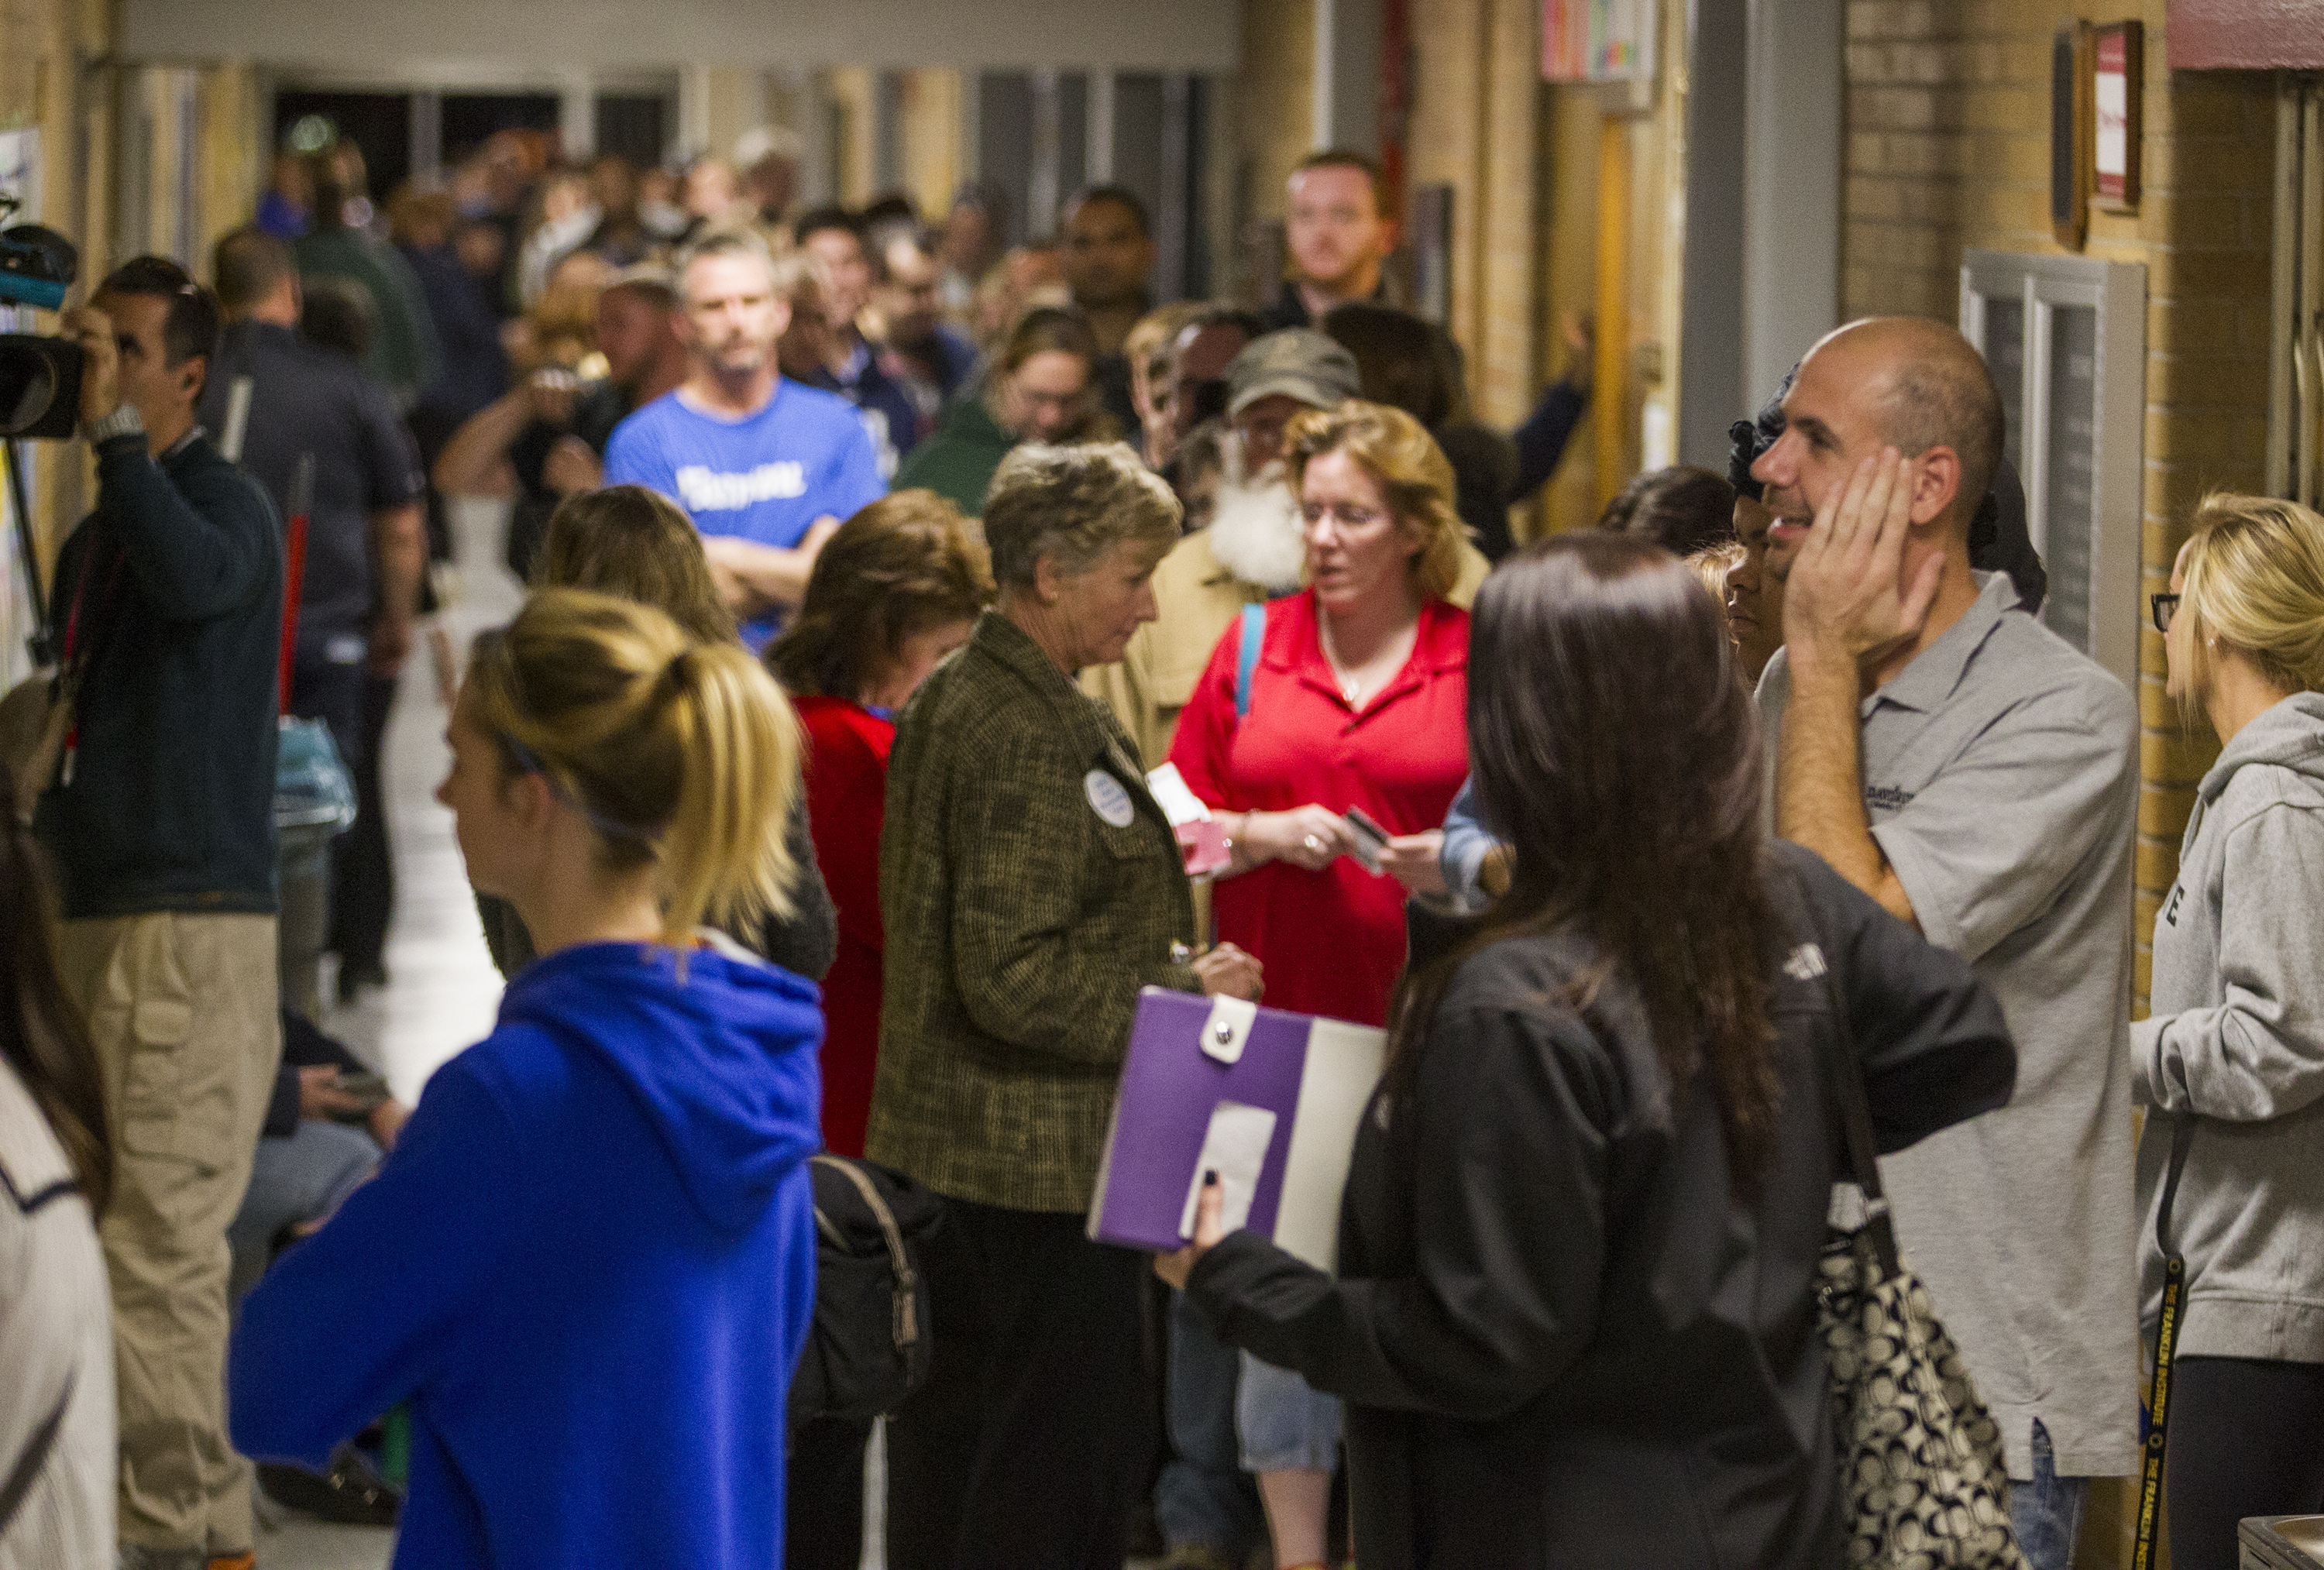 People line up to vote in Middletown Township, Bucks County at Herbert Hoover Elementary School on Nov. 8, 2016.